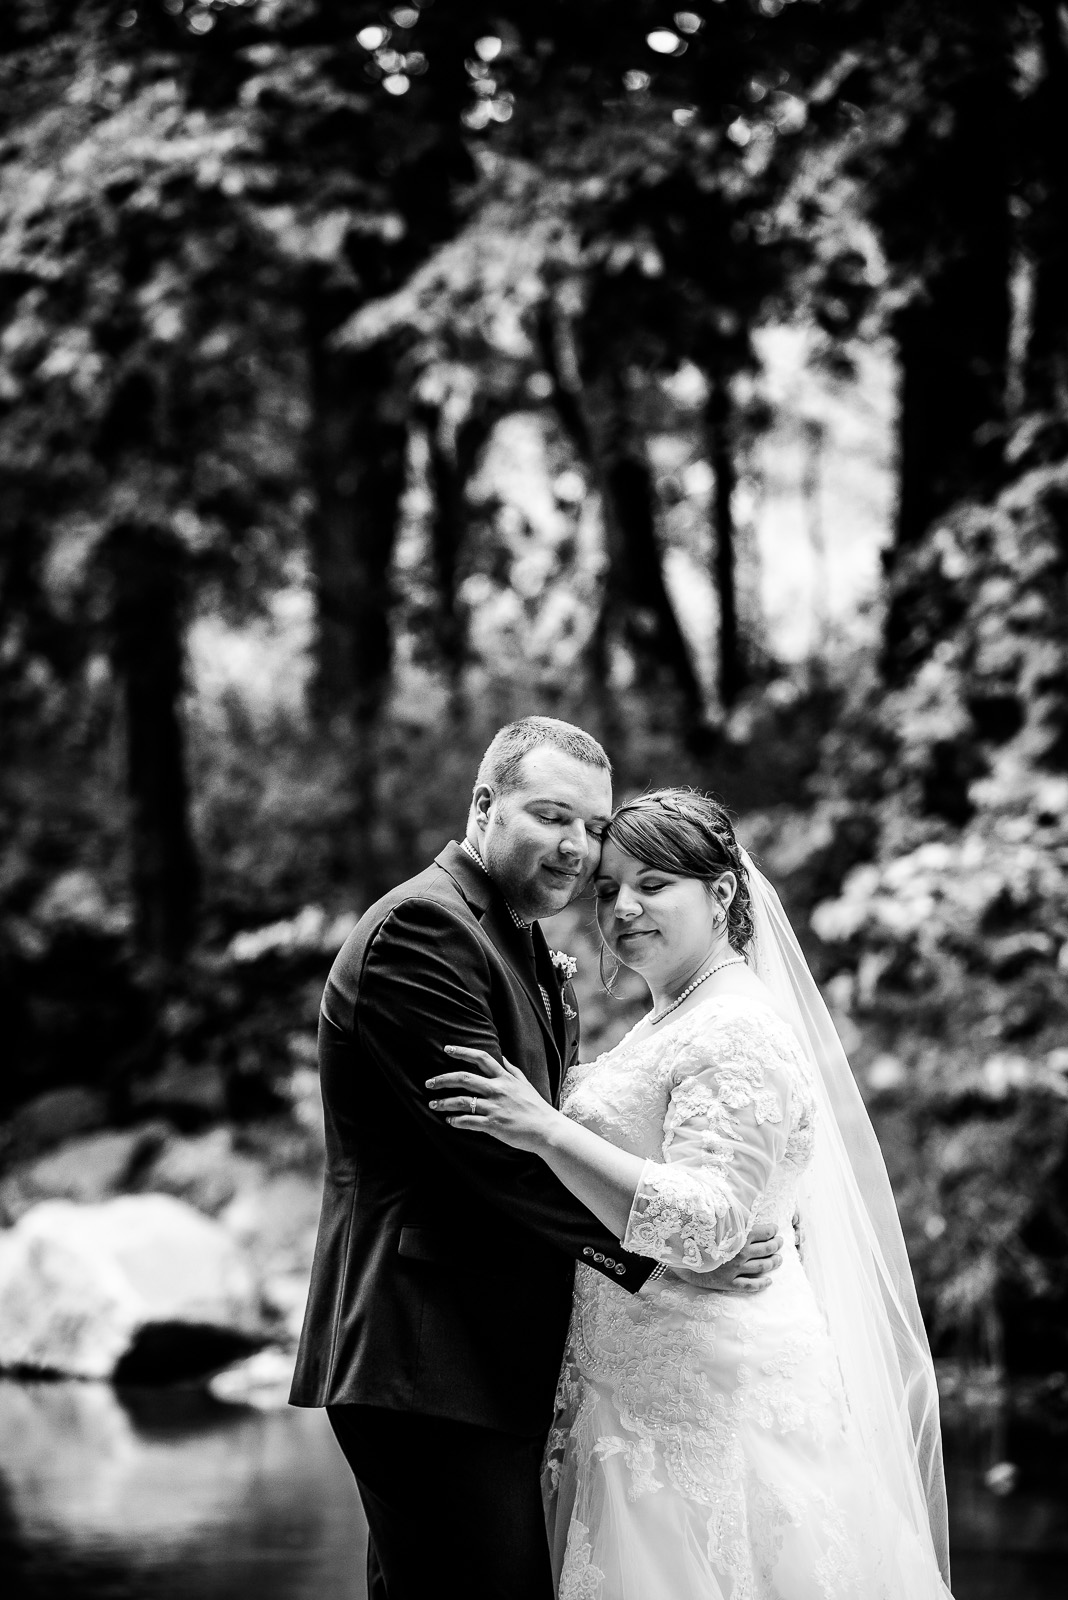 Eric_and_Christy_Photography_Blog_Wedding_Stacey_Geoff-52